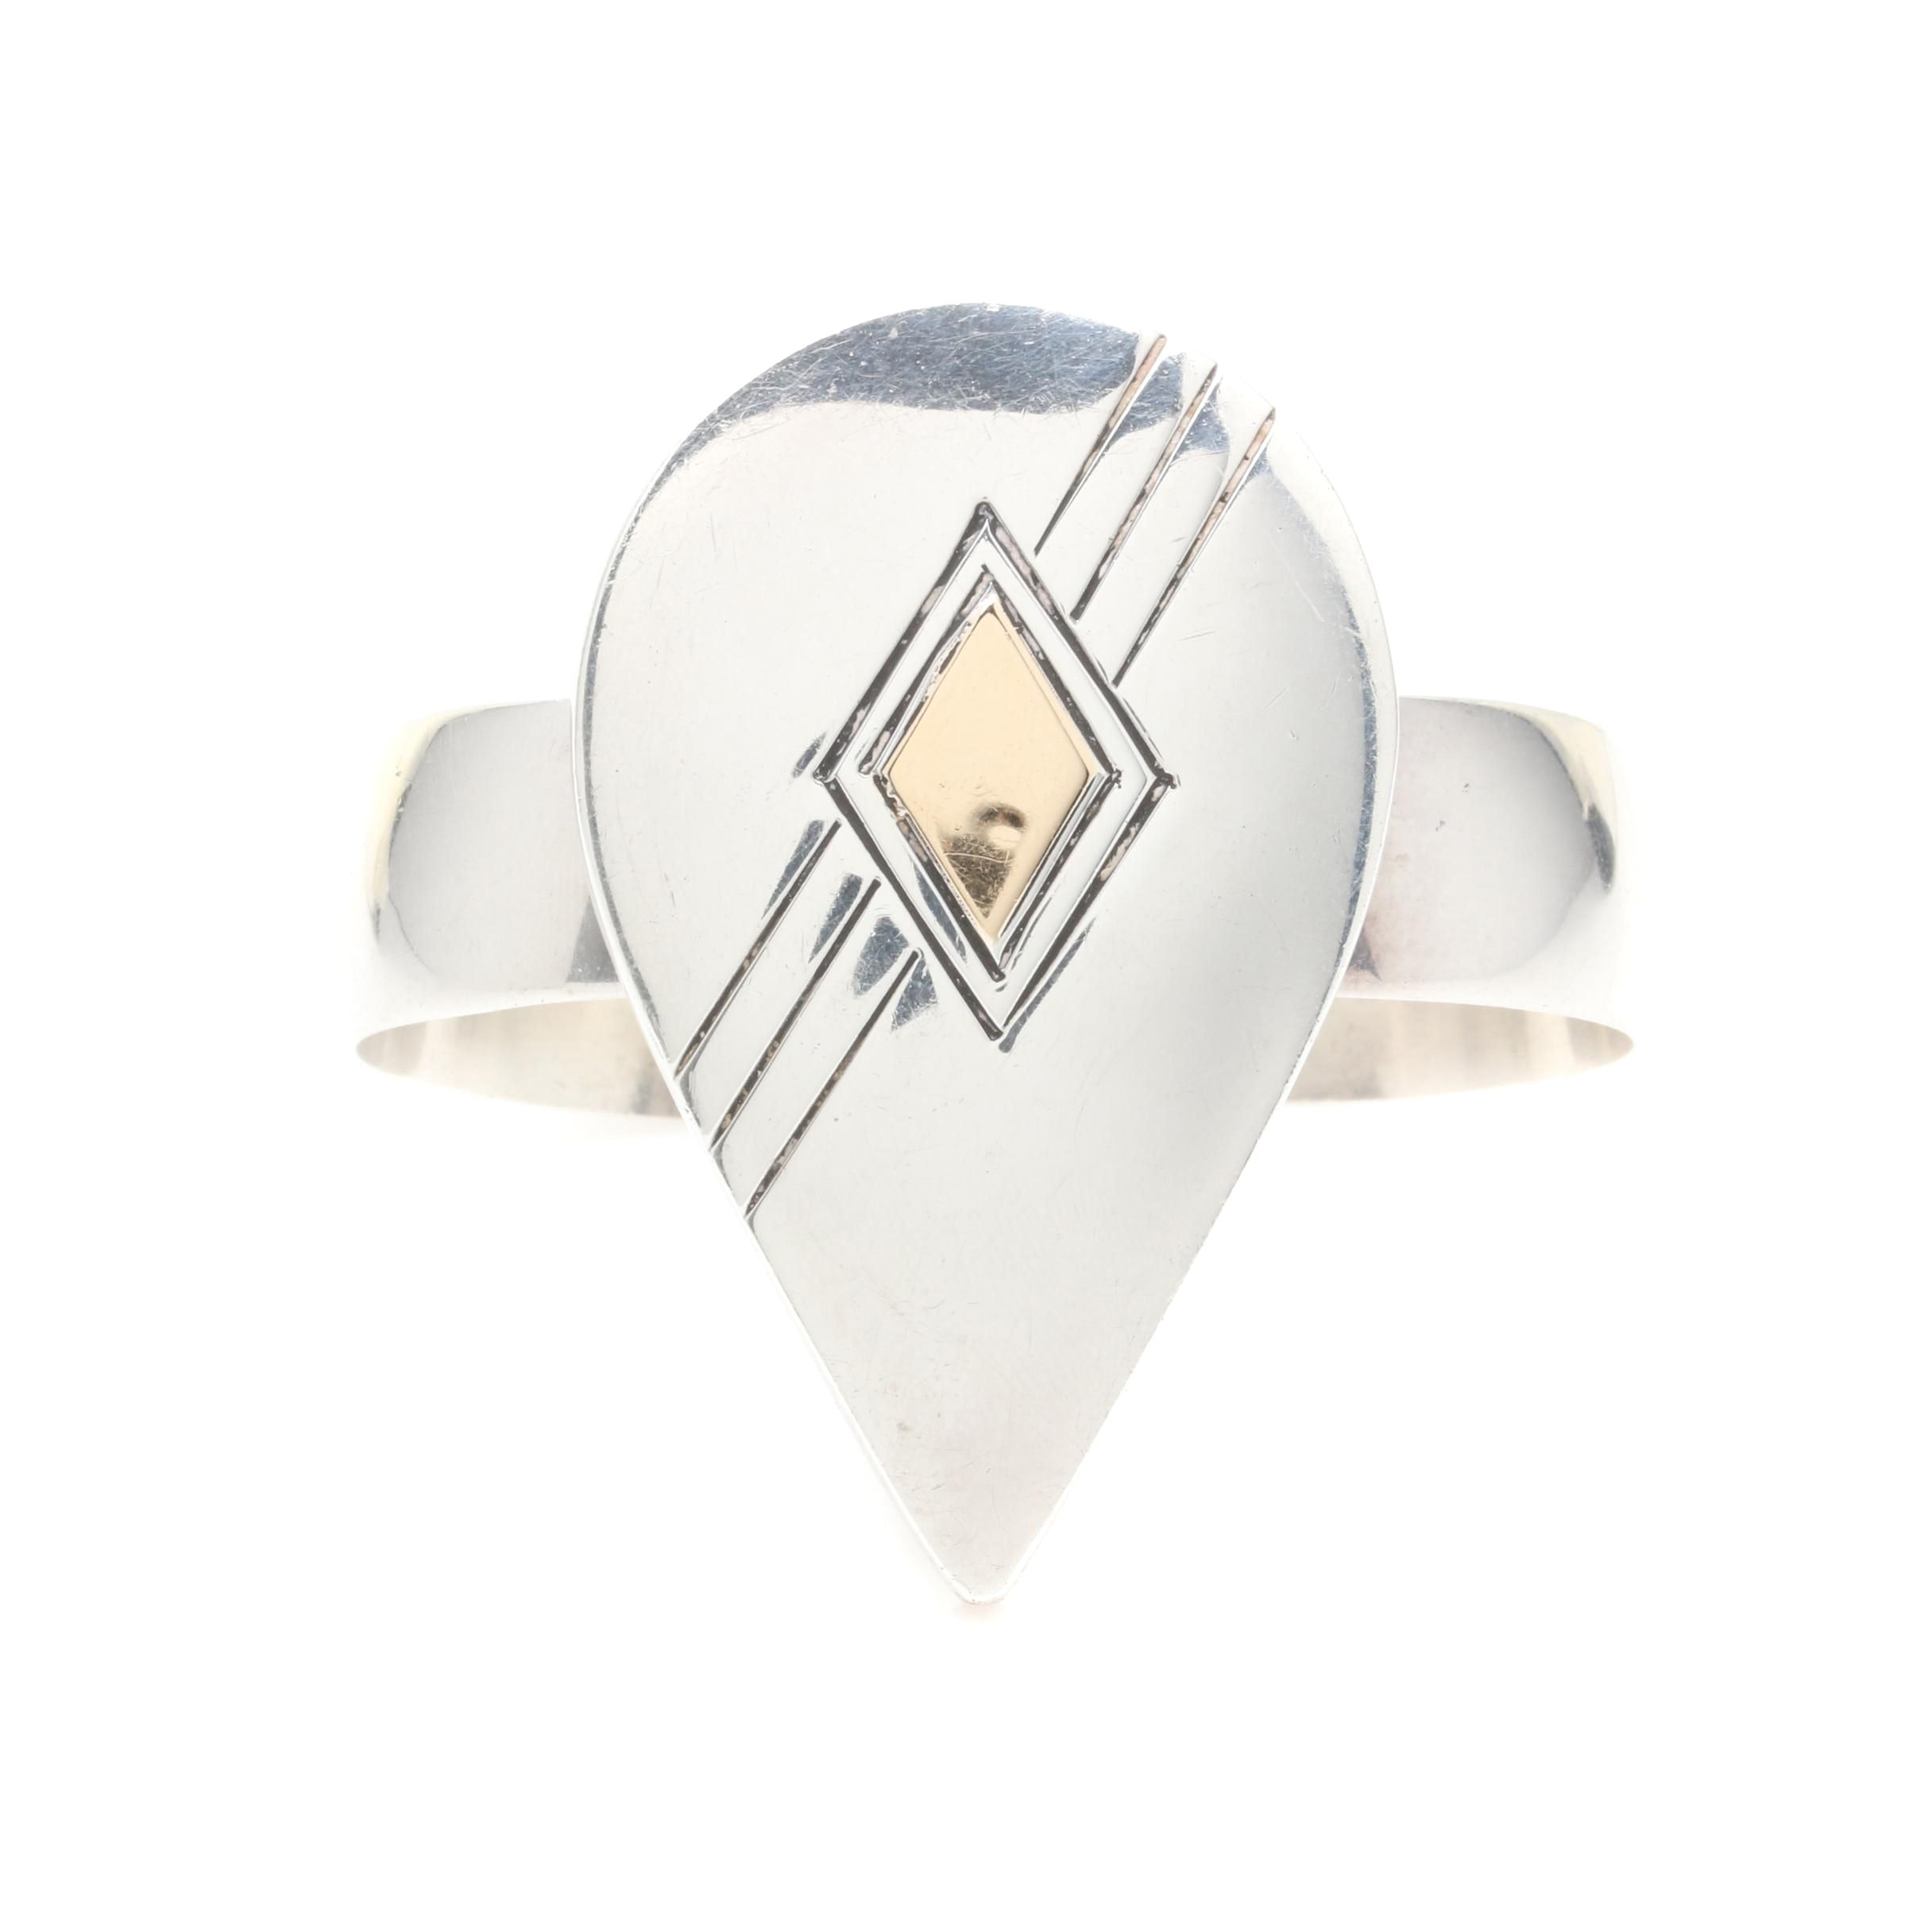 Gilbert Ortega Sterling Silver Adjustable Cuff Bangle with 14K Gold Accents